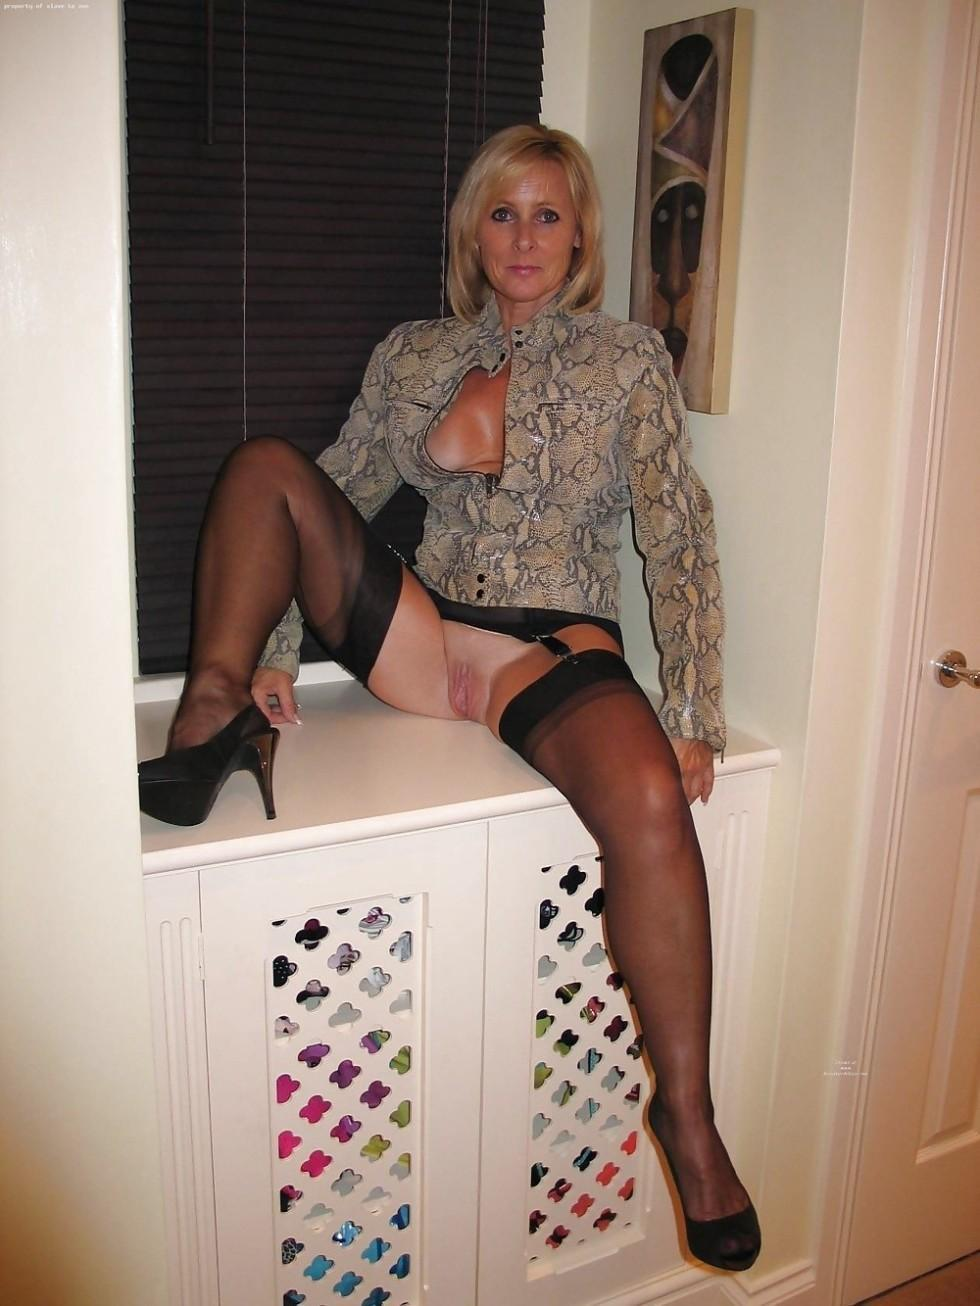 Naughty wife shows her meaty pussy and bares her sexy legs in stockings. Cheerful MILF strips her black lingerie to show her twat